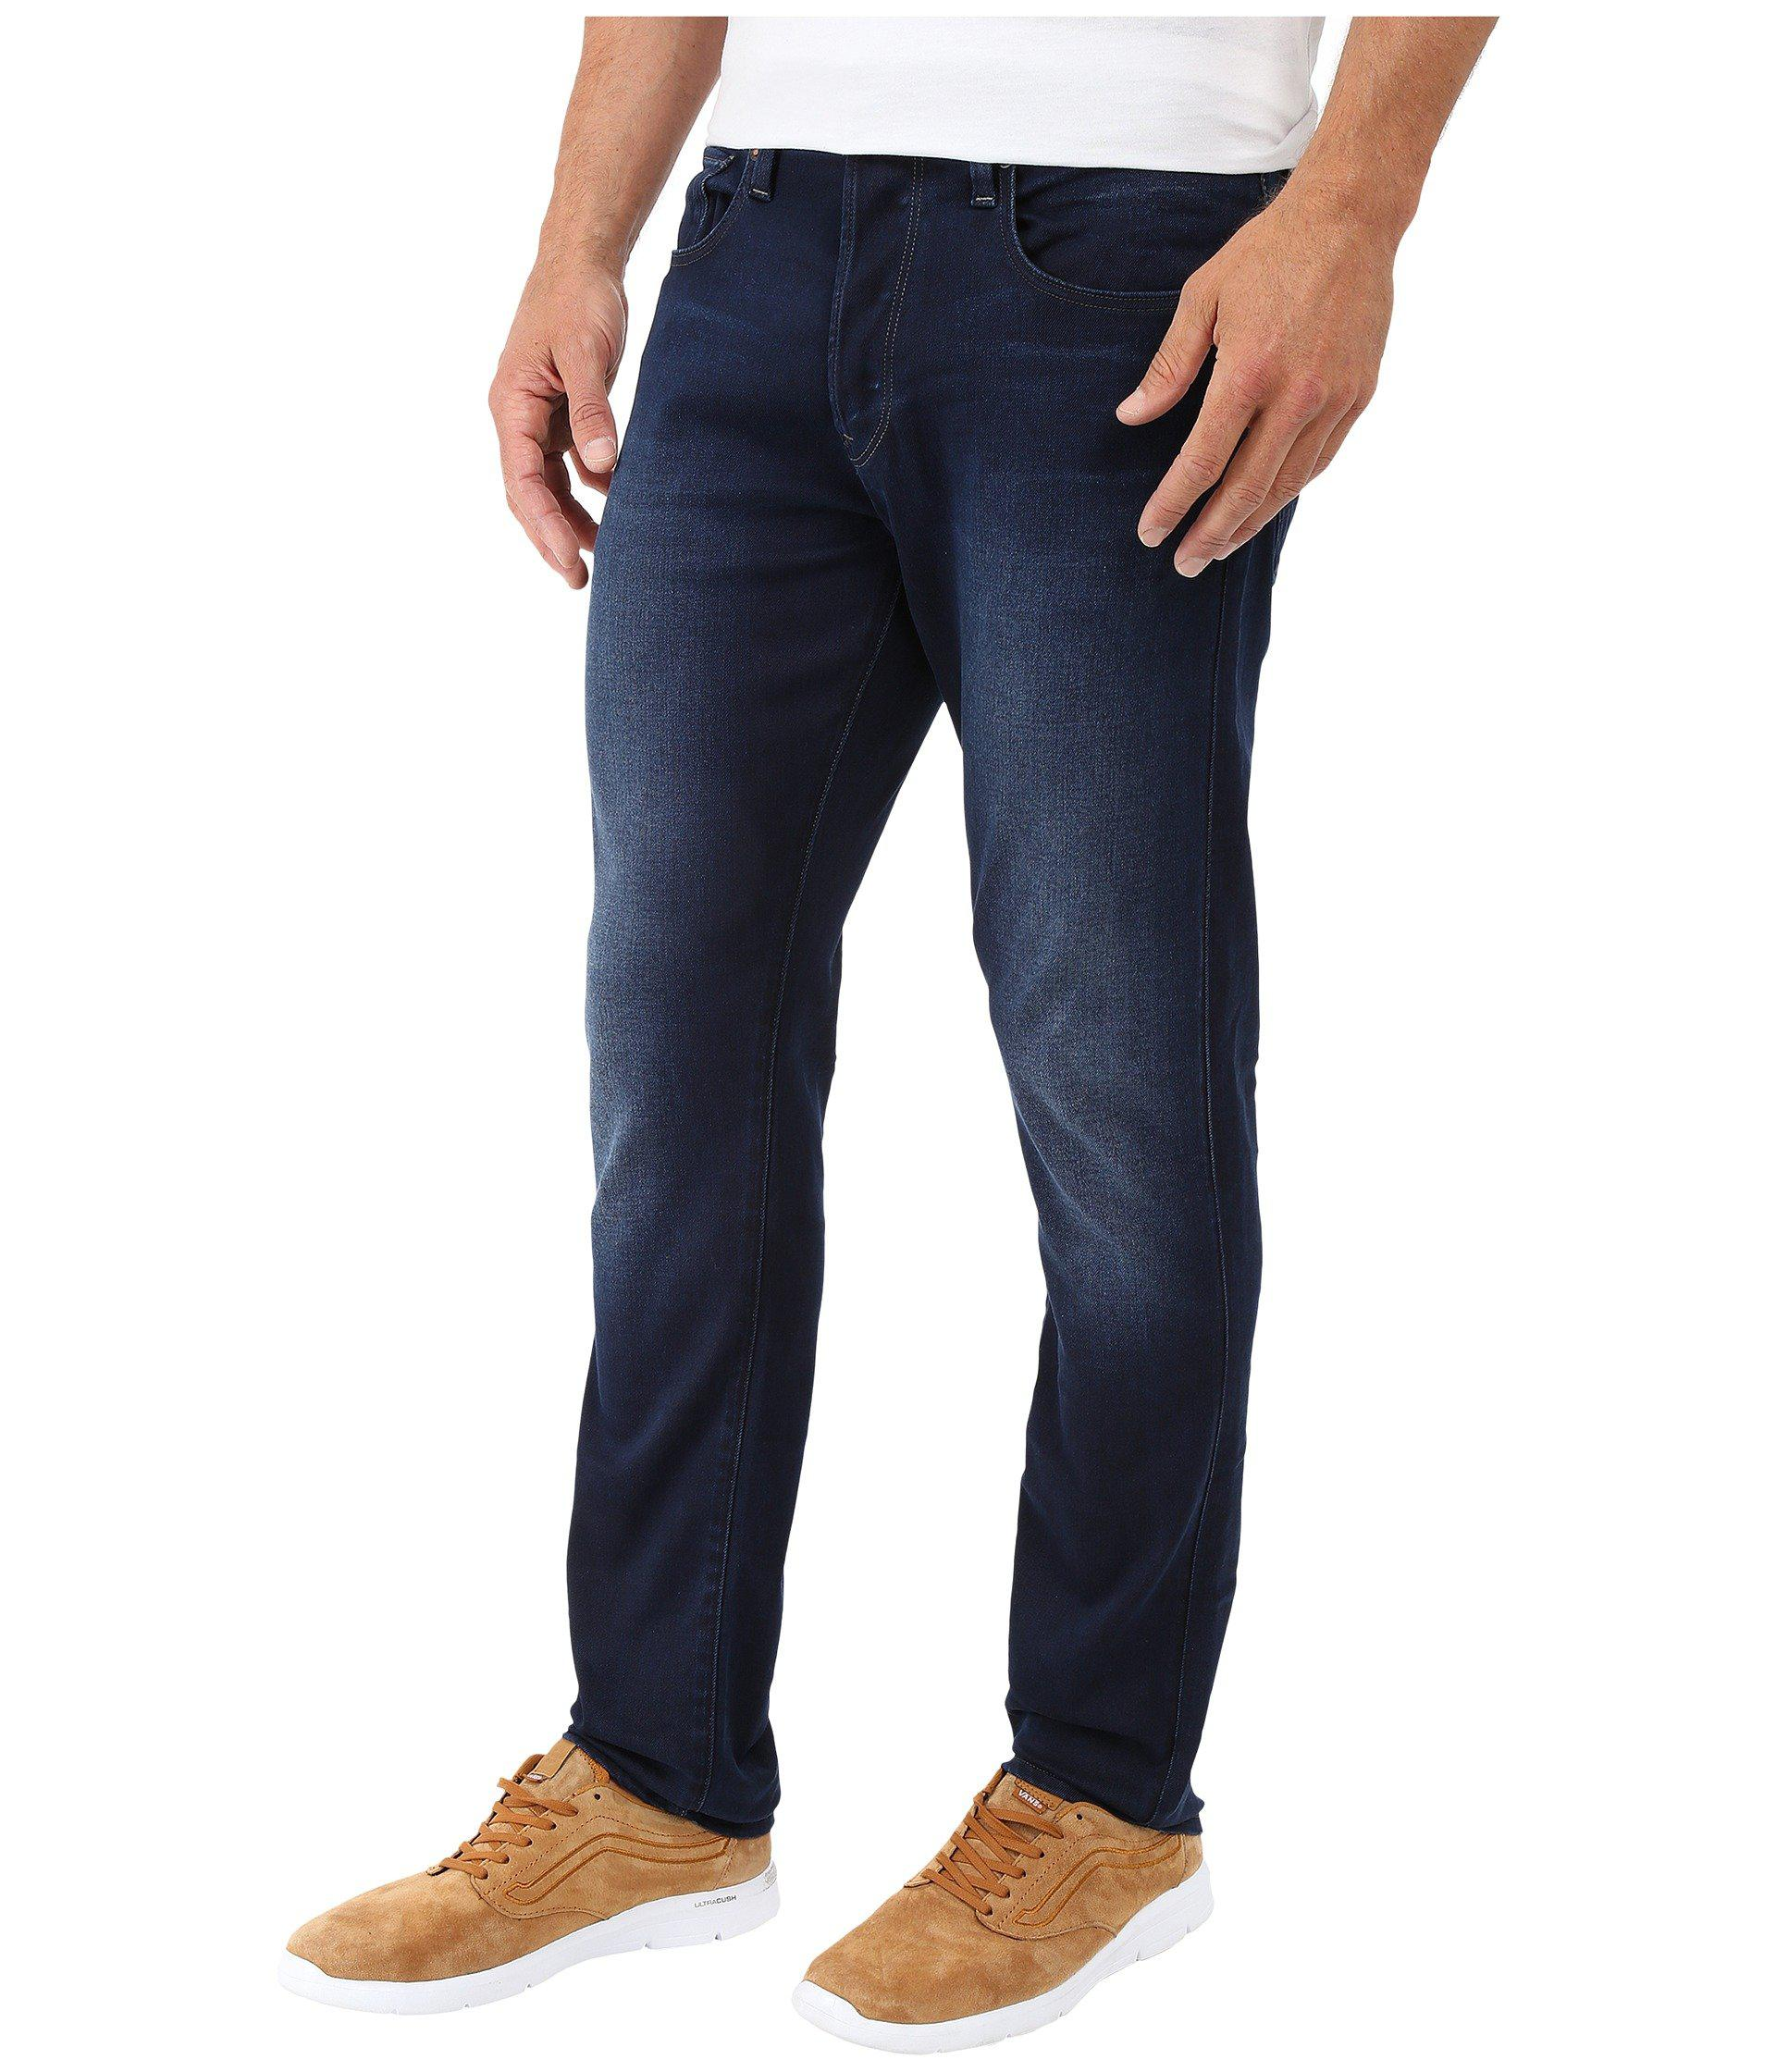 c0acc224575 G-Star RAW 3301 Tapered Fit Jeans In Slander Indigo Superstretch ...